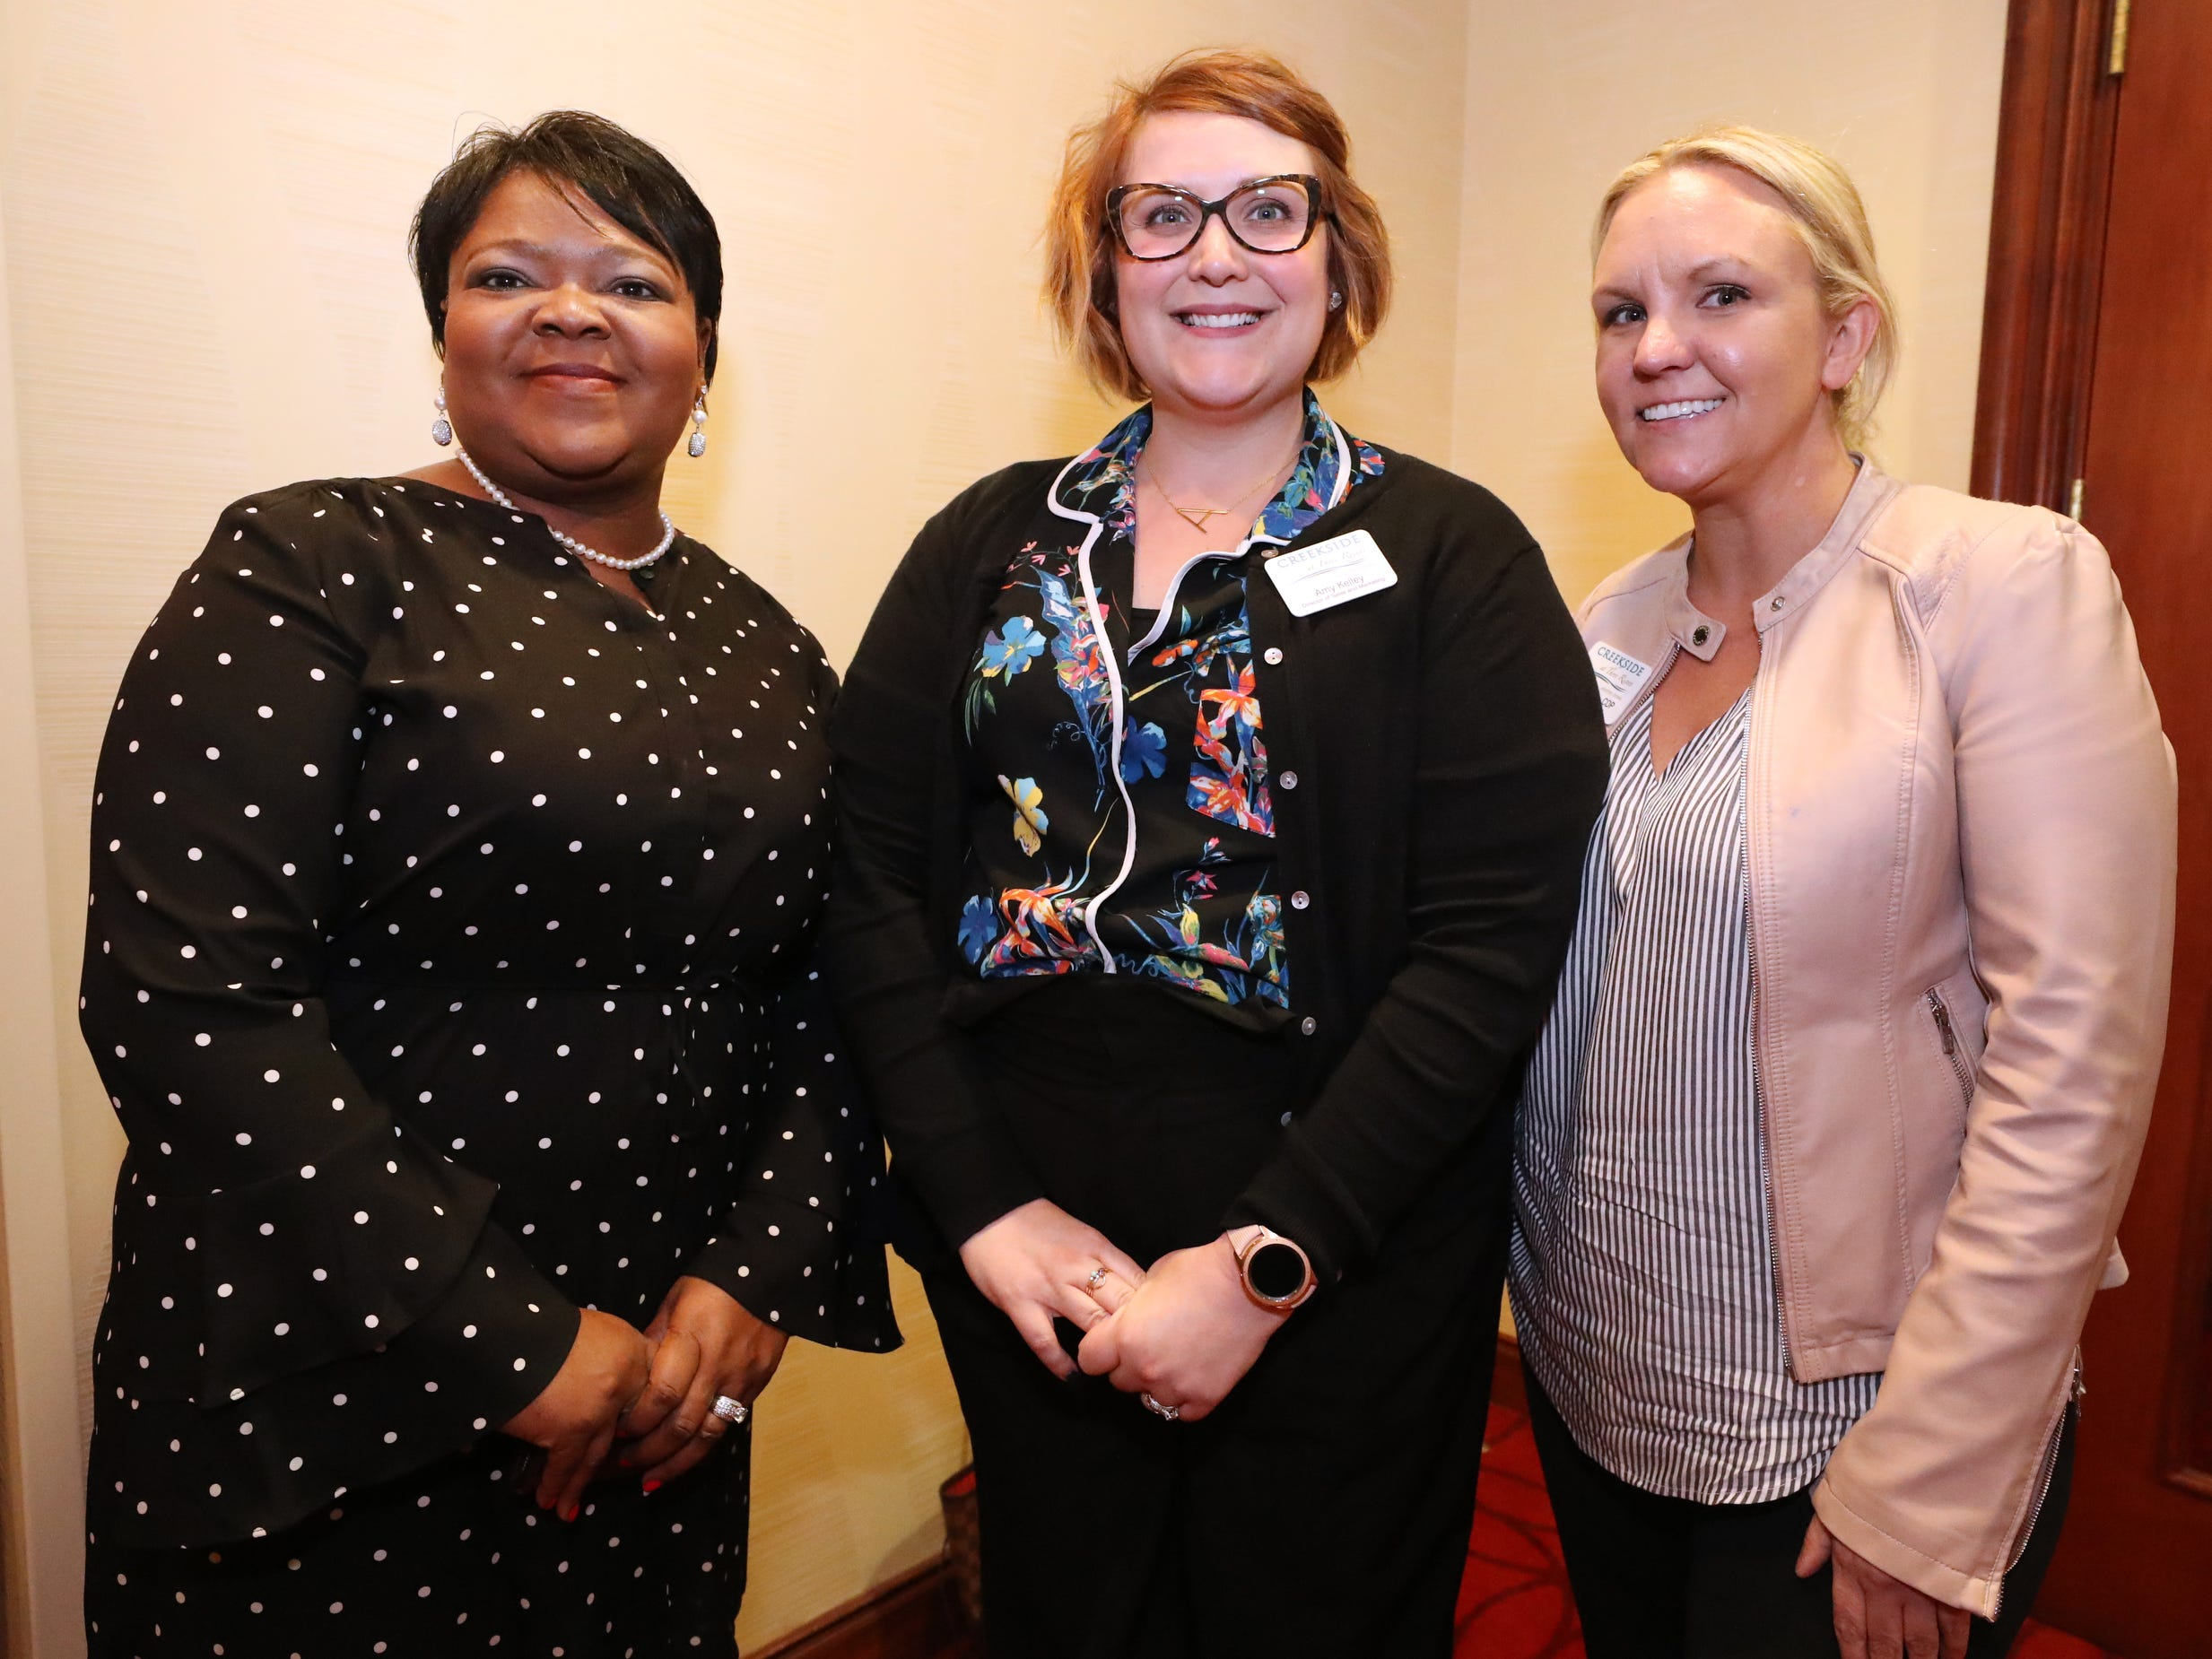 Sandra,Winfield, left, Amy Kelley, center, and Katy Keaxh  at Murfreesboro Magazine's 2019 Women in Business Luncheon on Tuesday, March 12, 2019, at the Embassy Suites Murfreesboro.